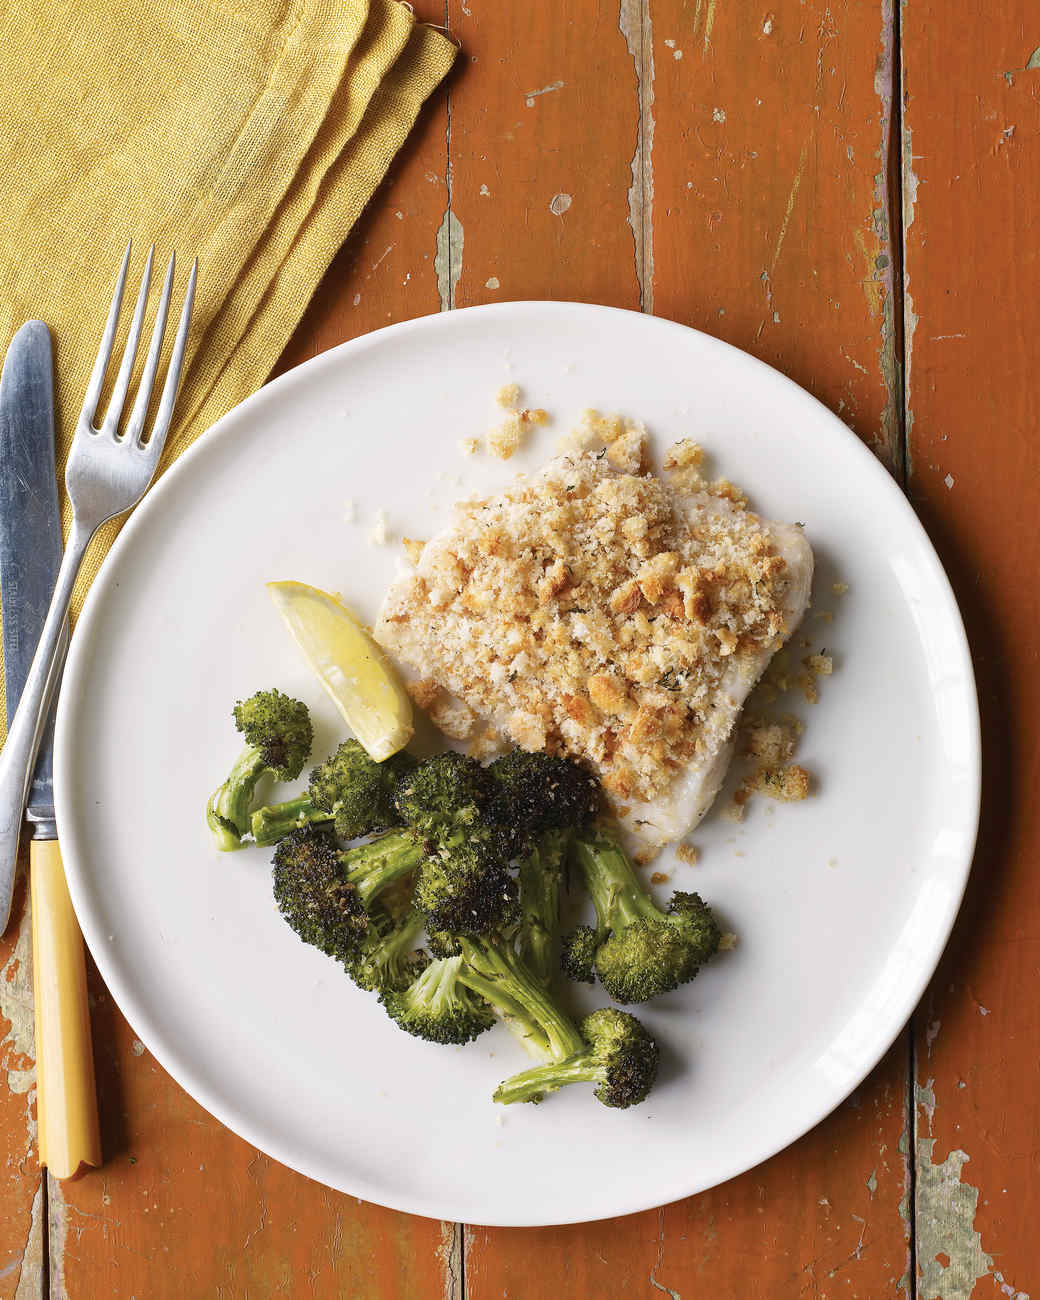 Baked fish with herbed breadcrumbs and broccoli for Crispy baked whiting fish recipes